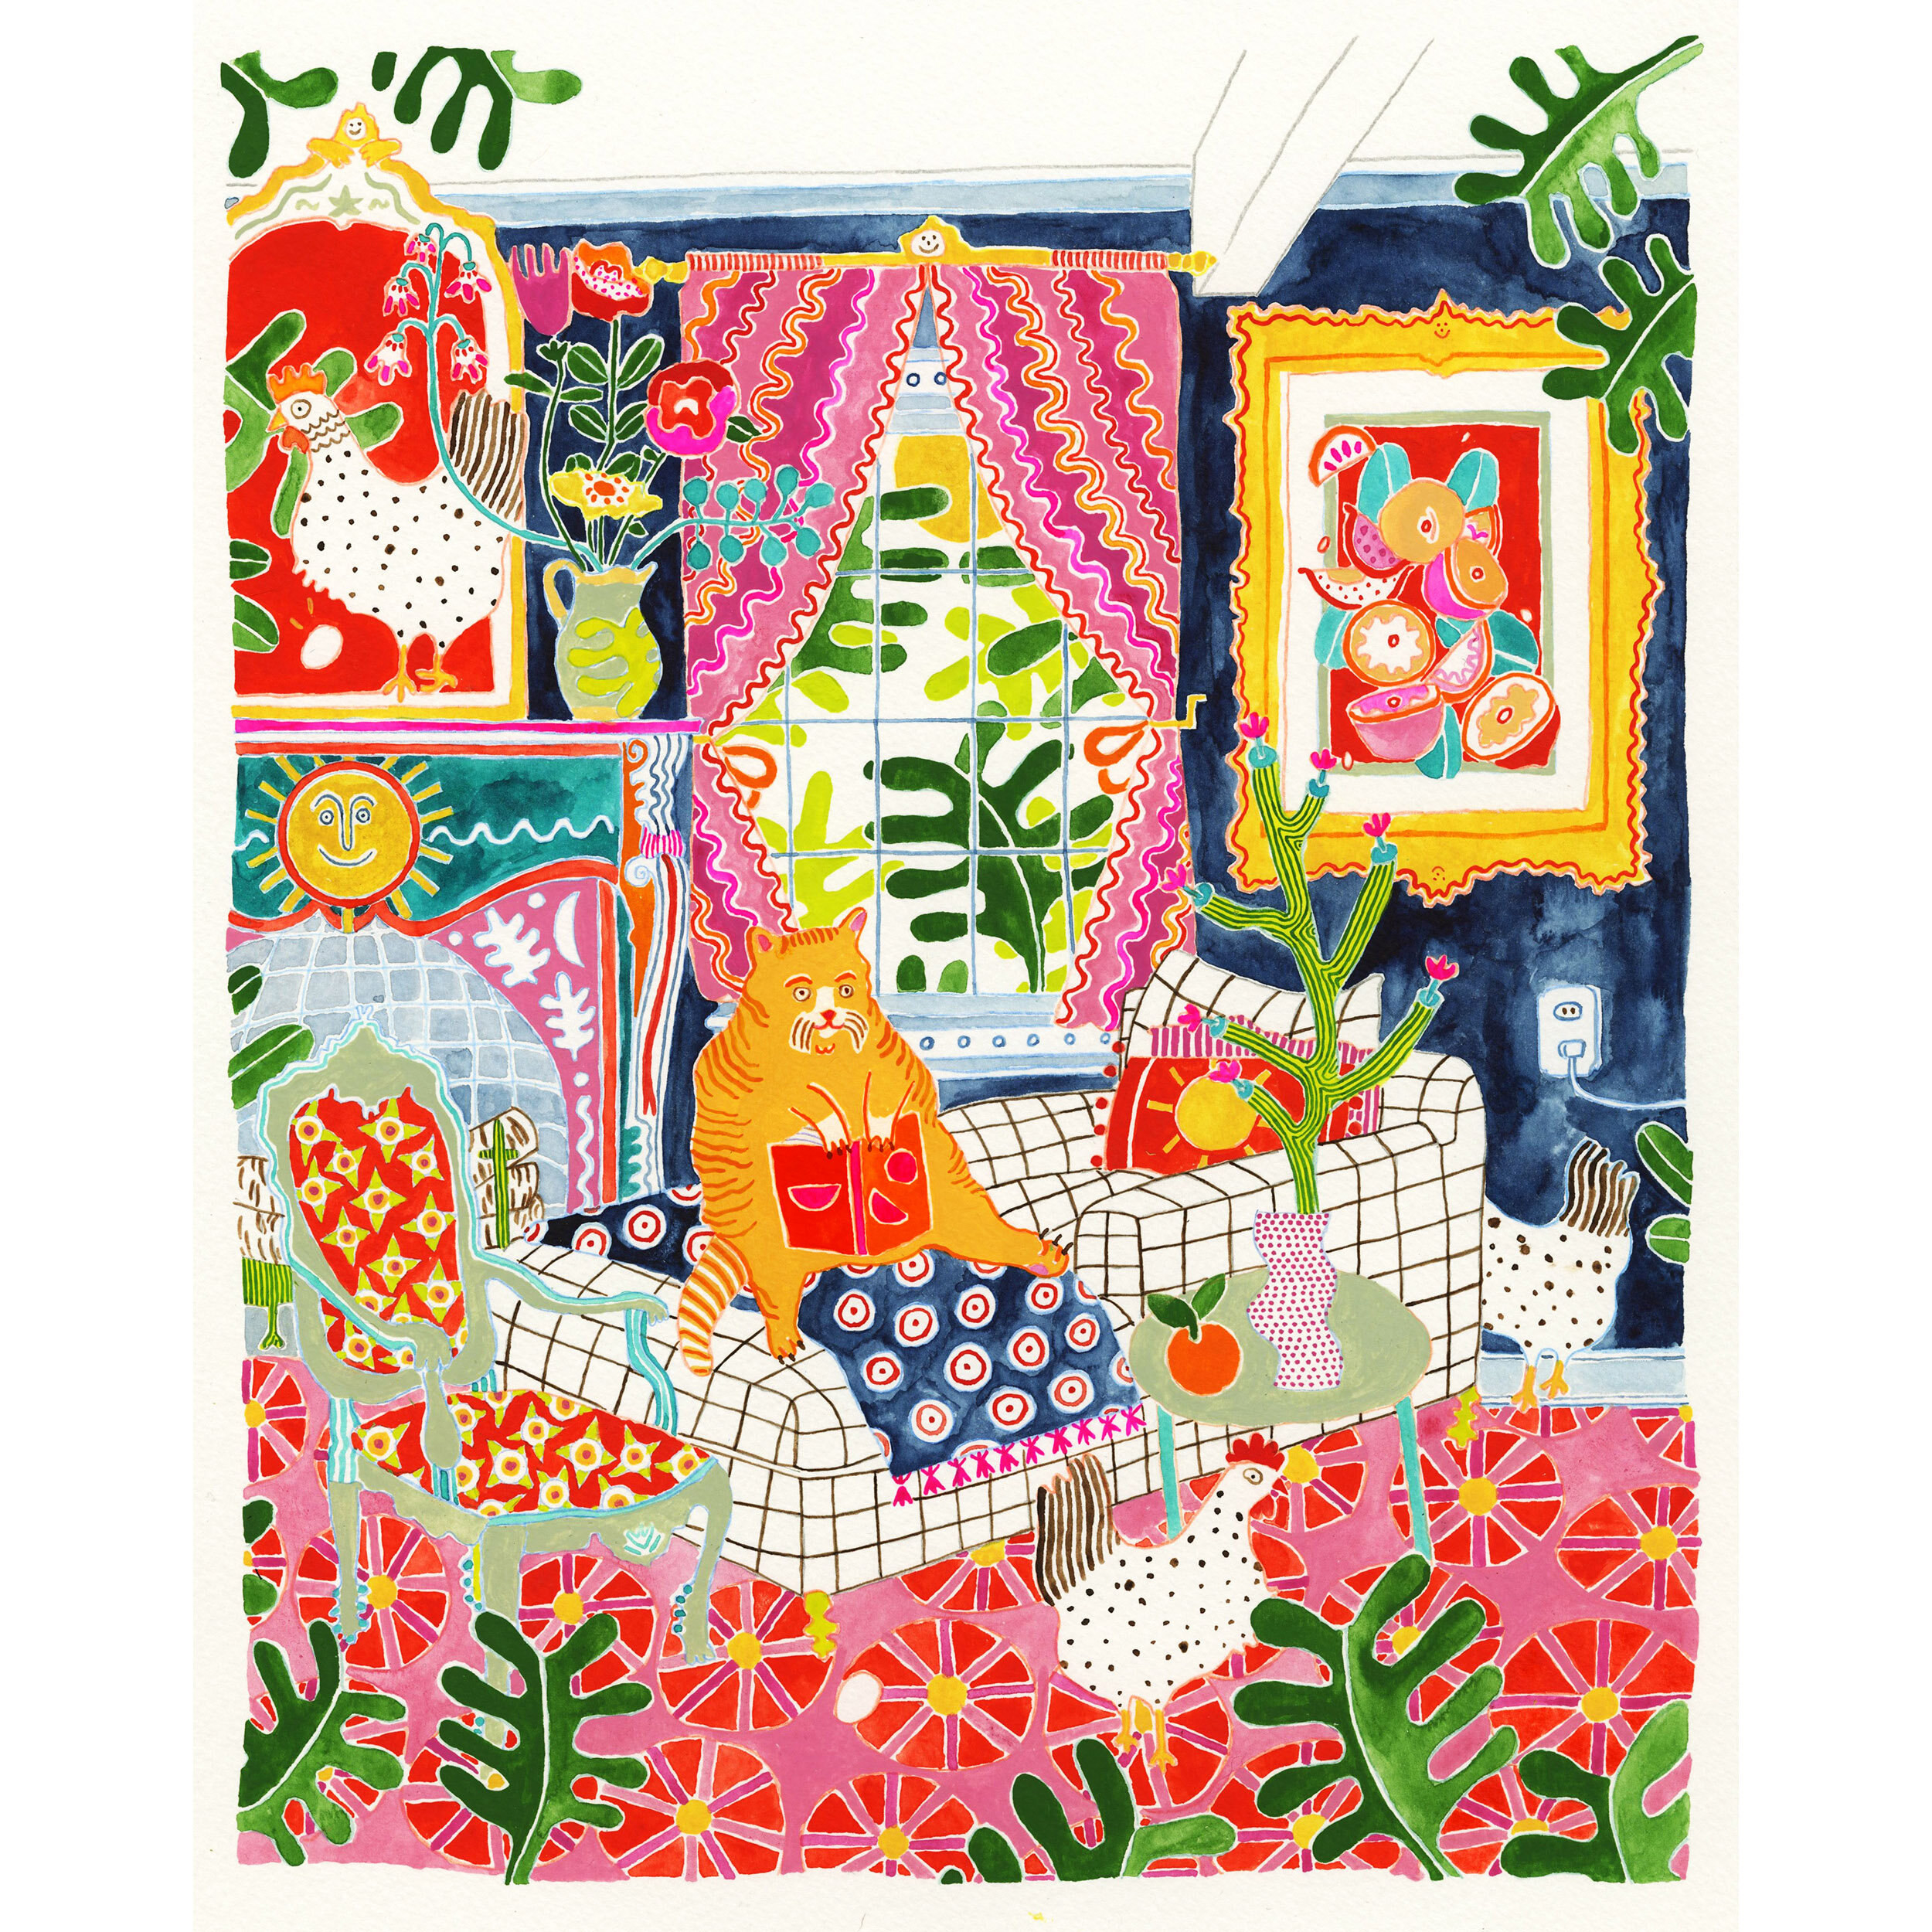 """""""All Together Now"""" by Priscilla Weidlein, a room filled with plants, animals, furniture, and vivid colors"""